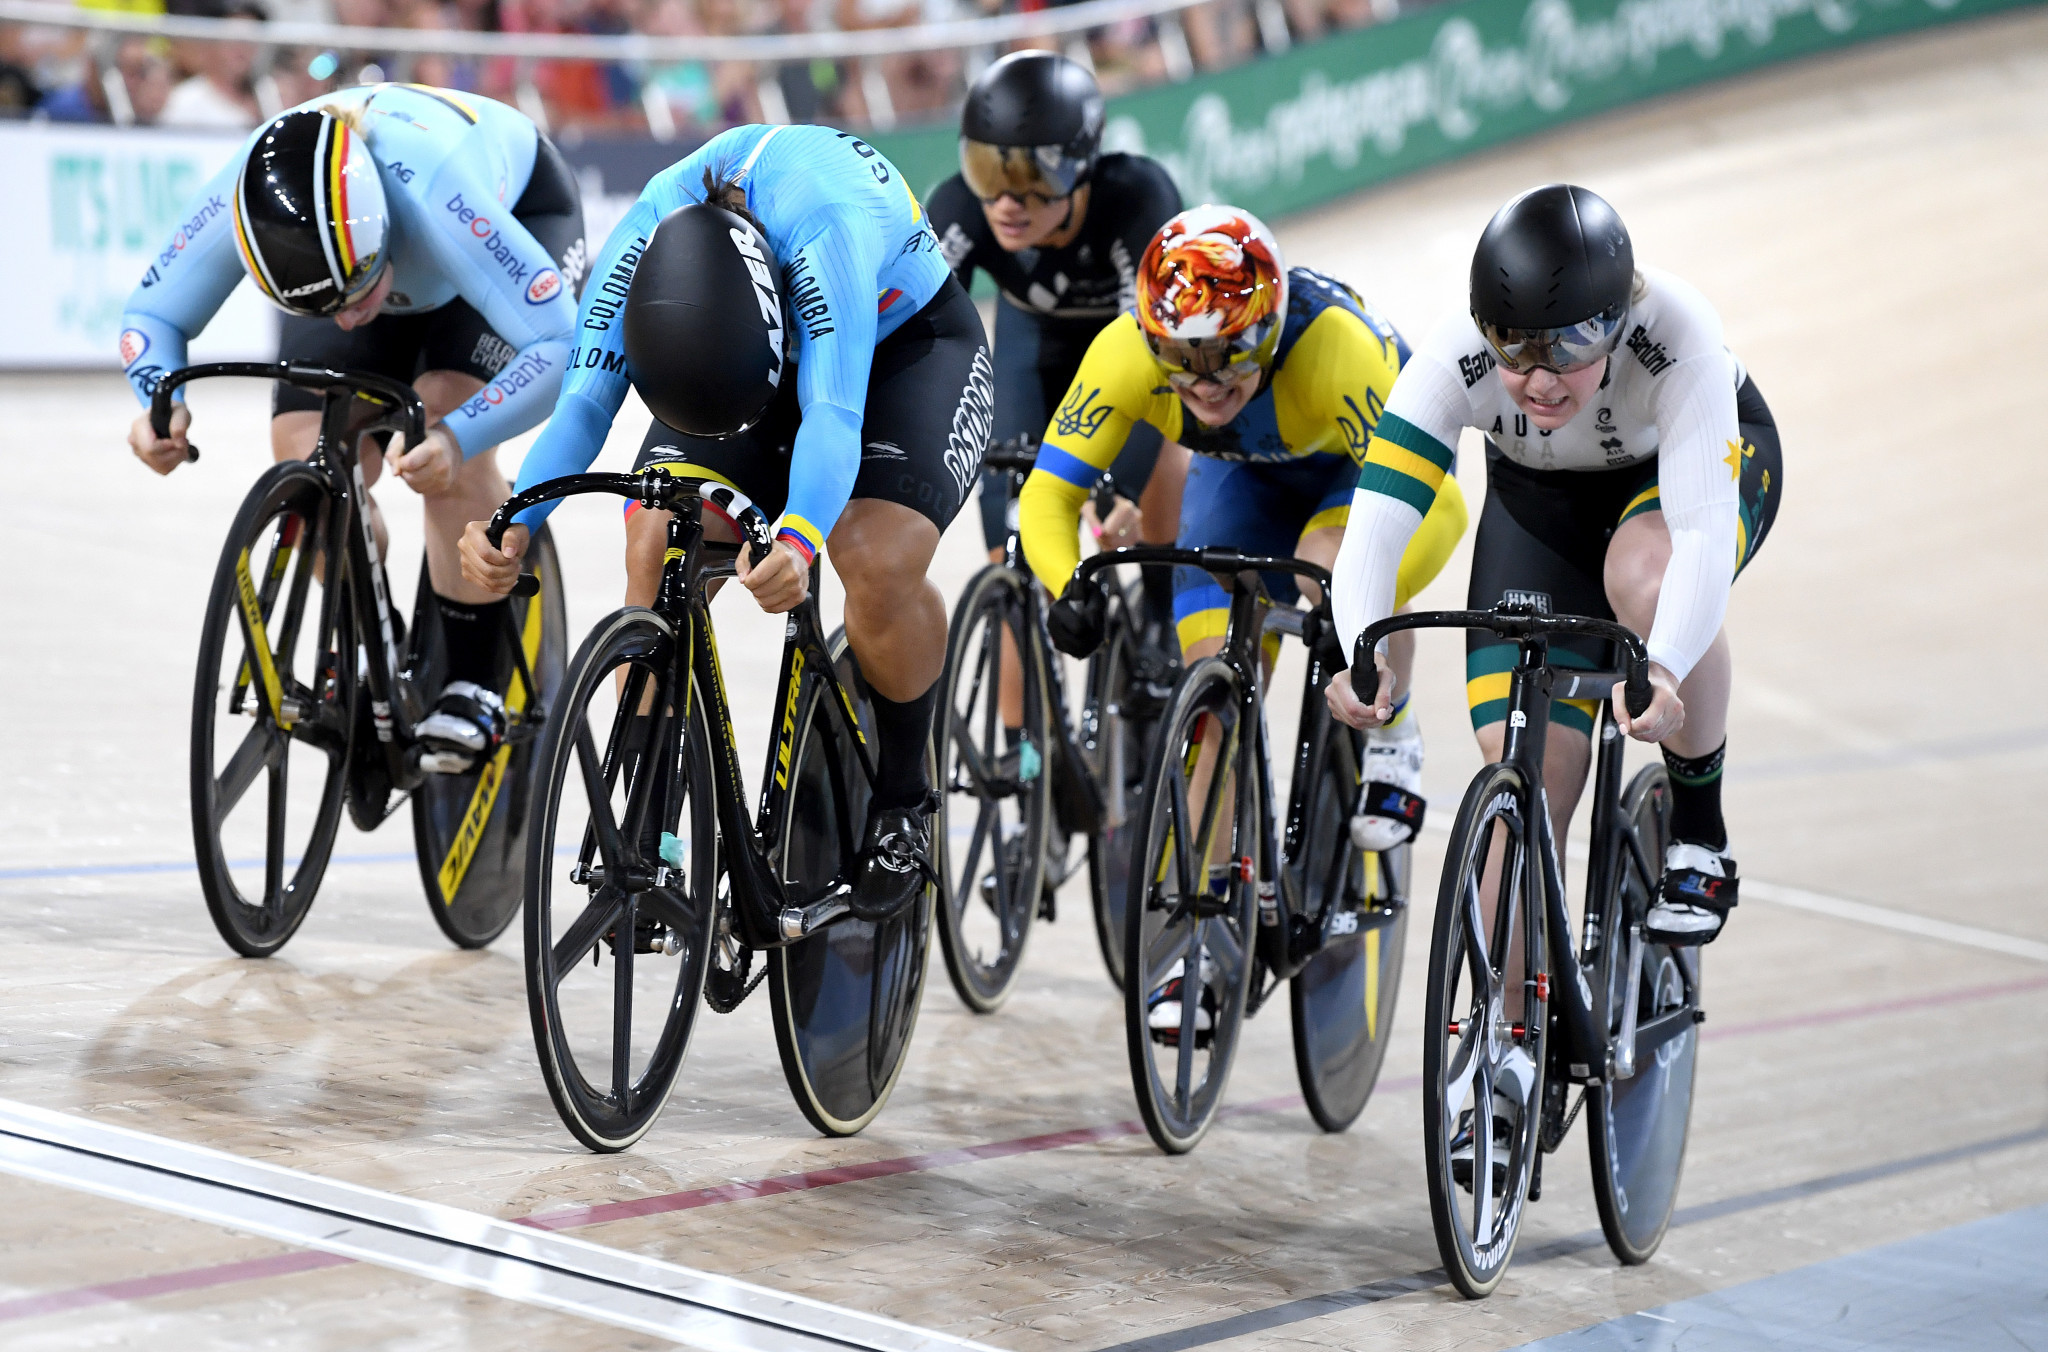 Keirin Autorace Foundation appointed official contributor of Tokyo 2020 to help maintain controversial velodrome